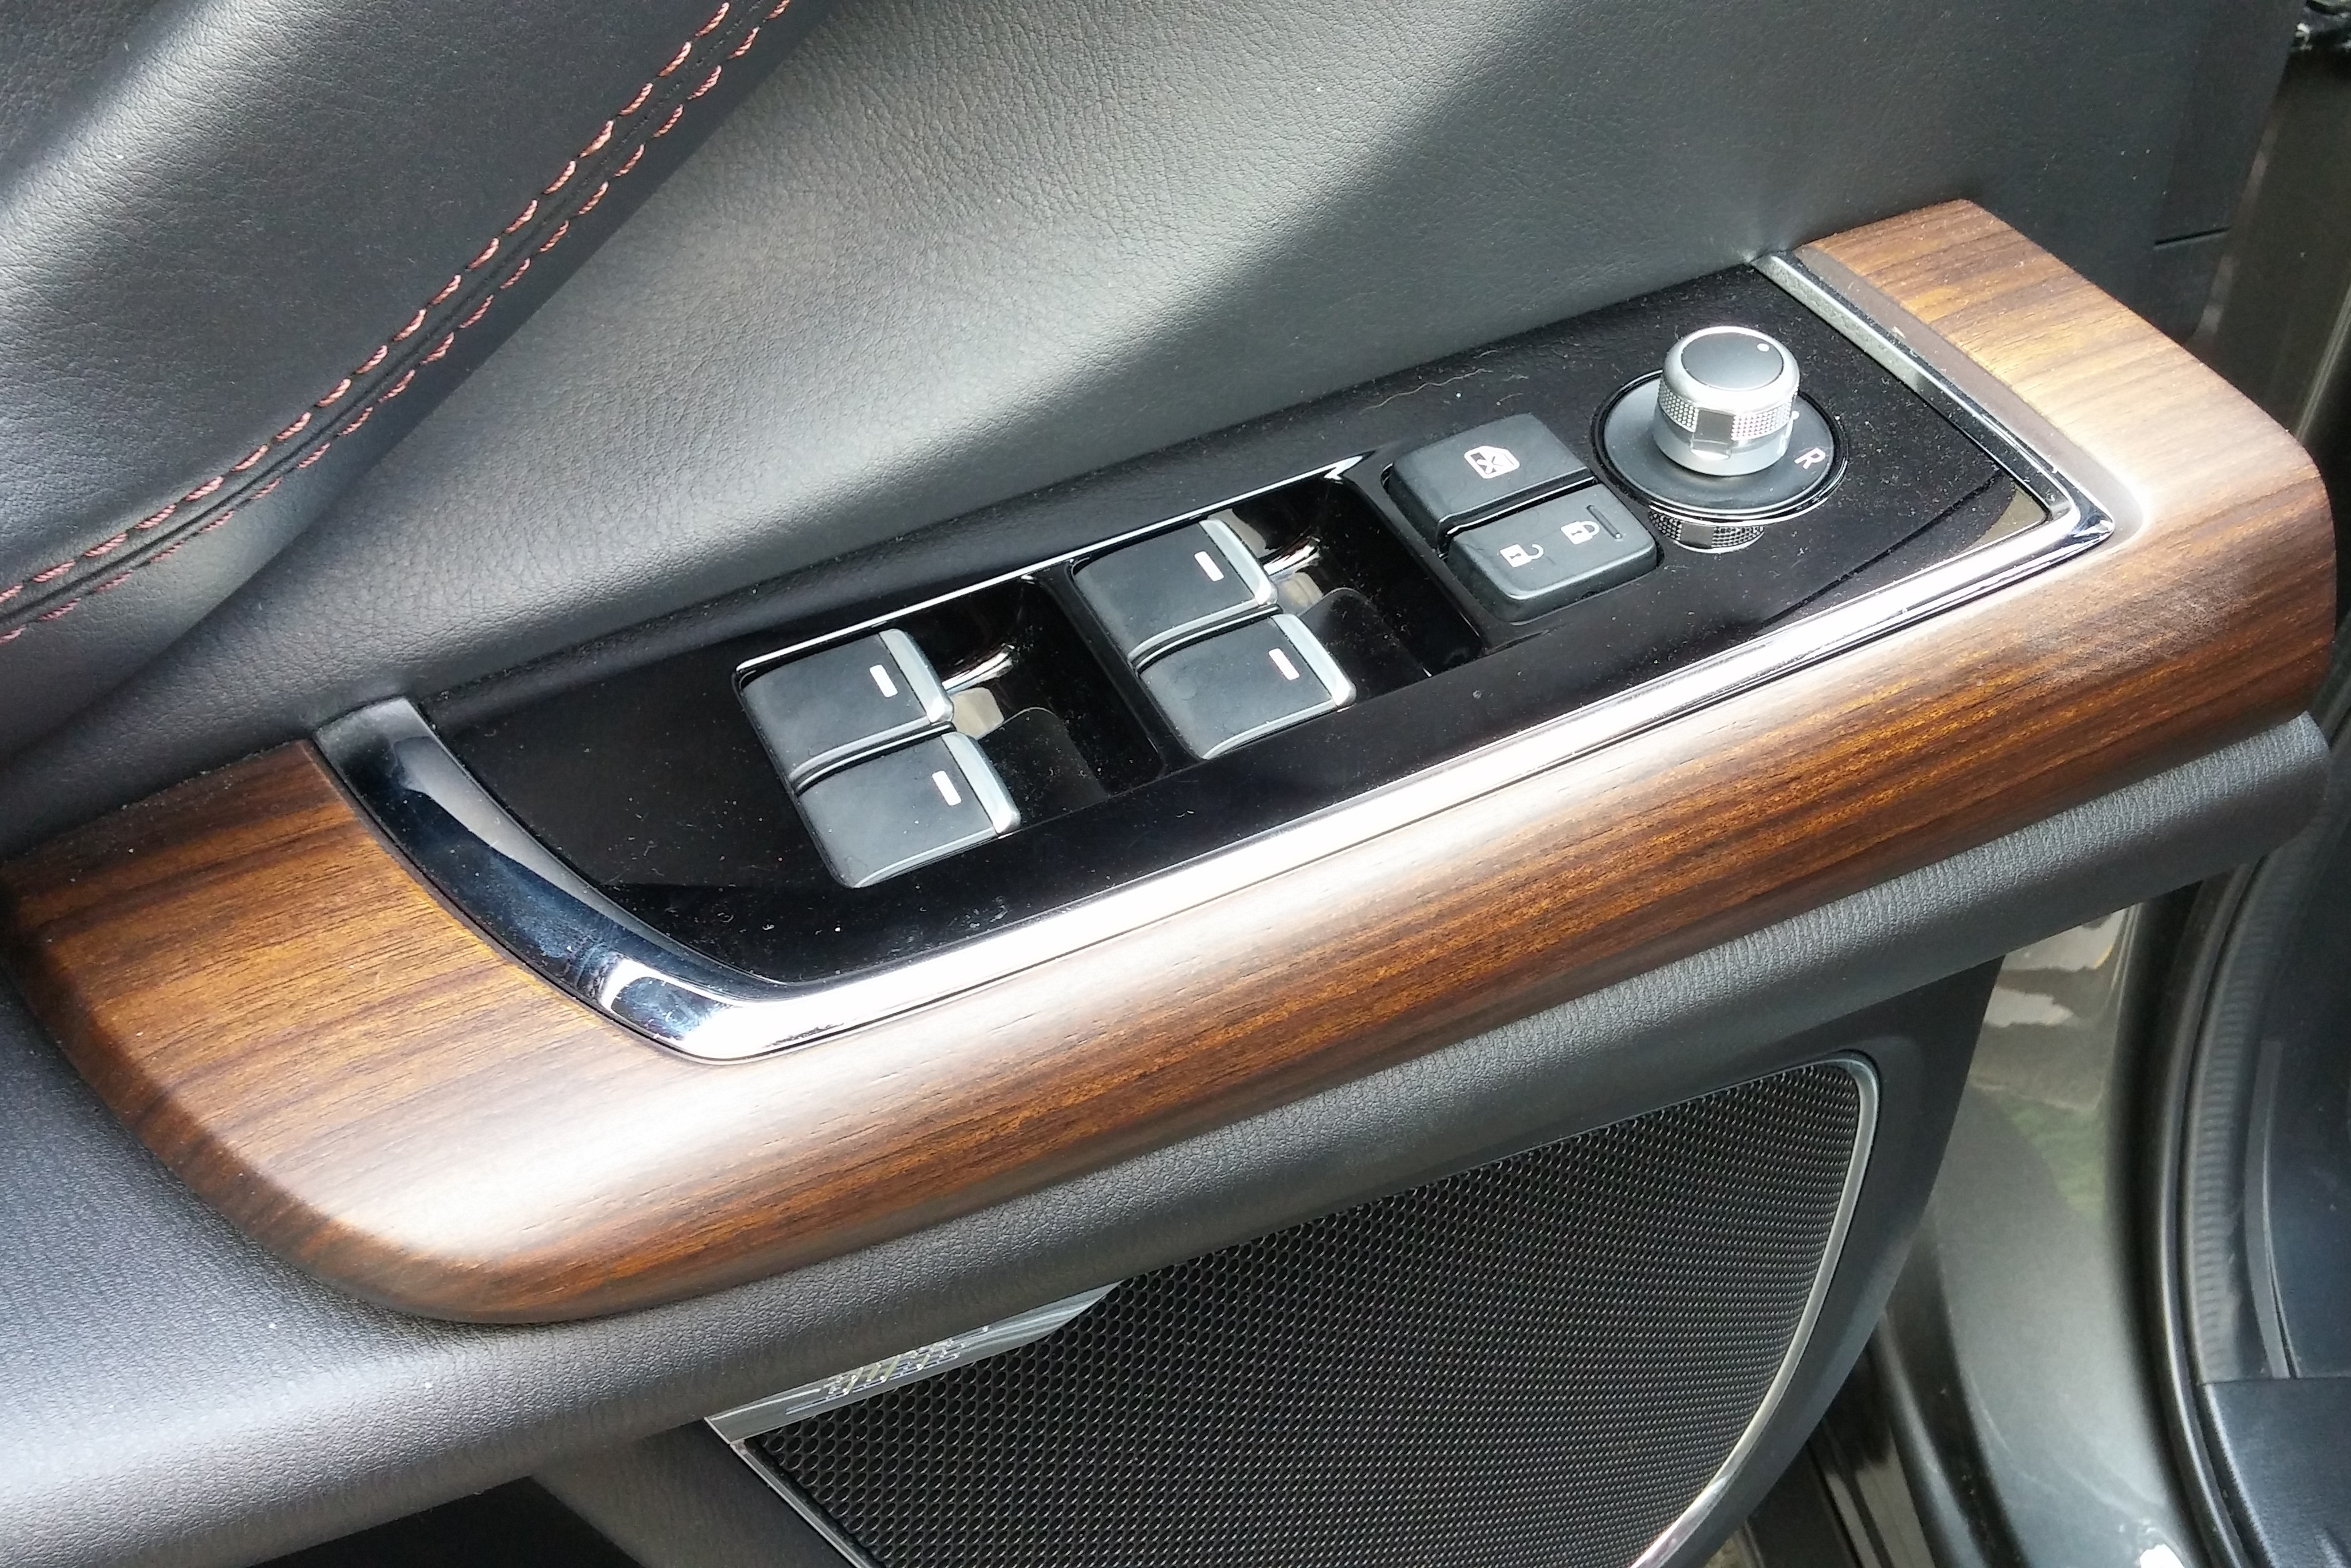 Details like the CX-9's wood trim are photo-worthy